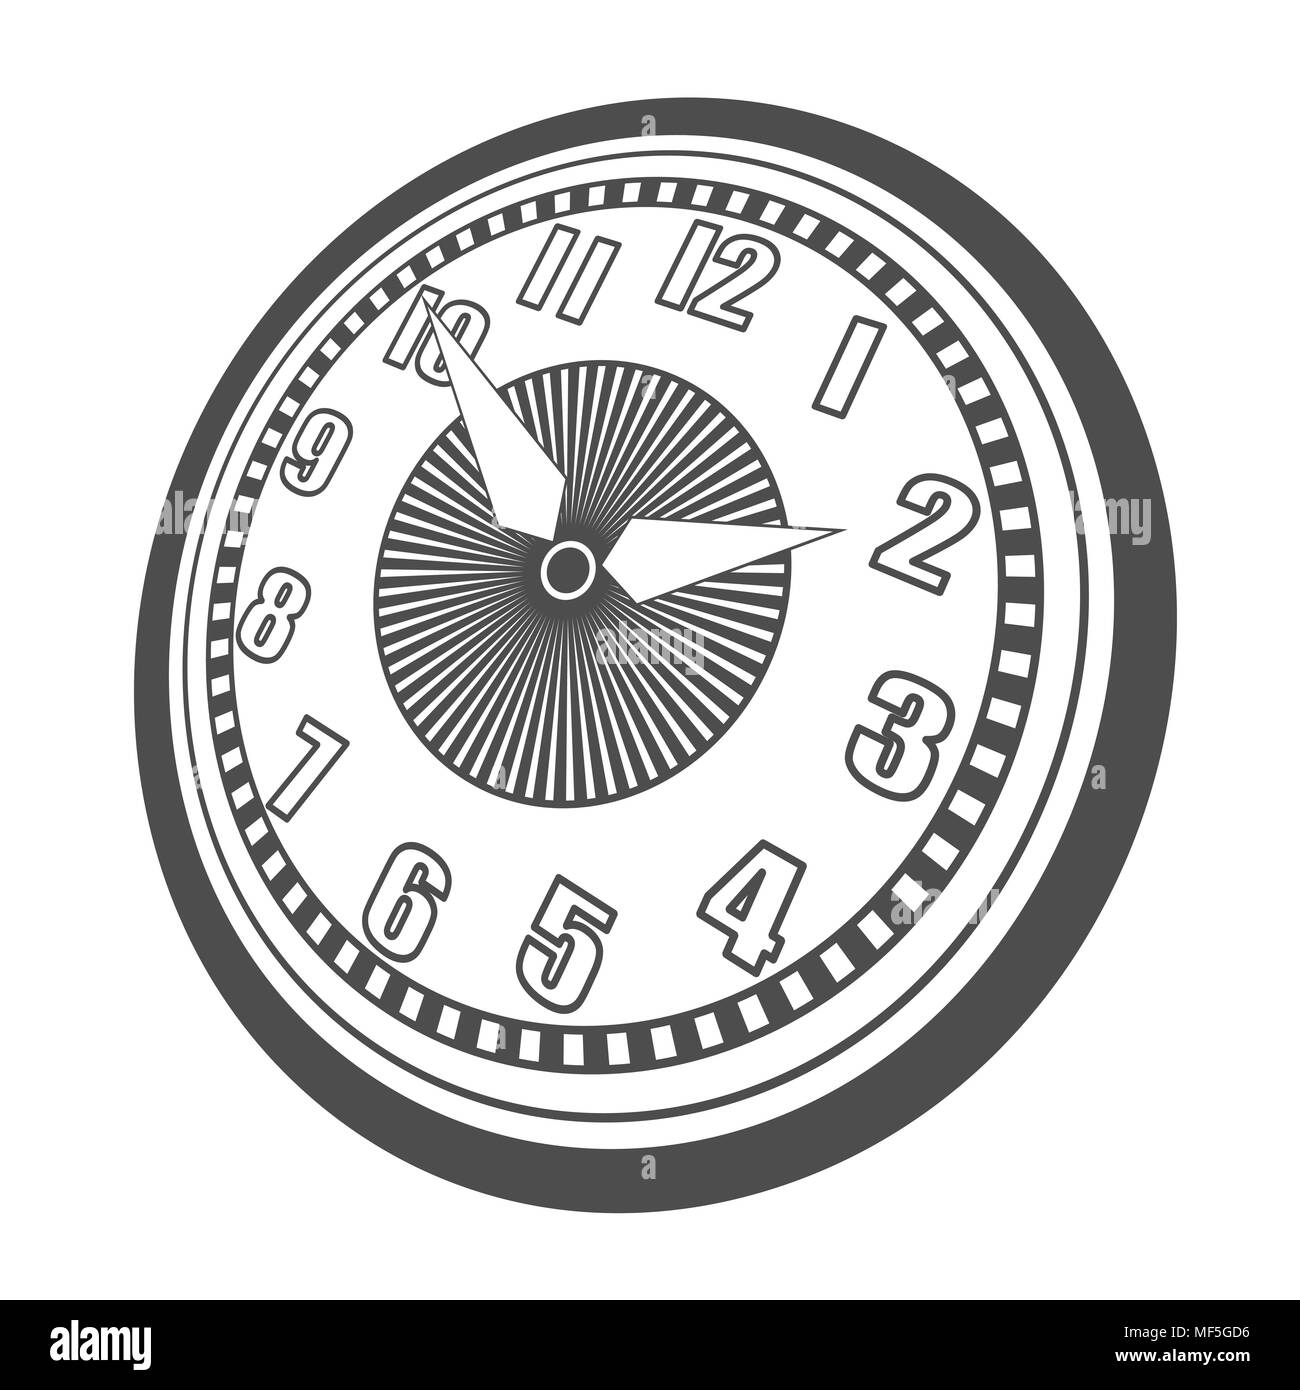 Classic design mechanical wristwatch isolated on white background. Clock face with hour, minute and second hands. Vector illustration. - Stock Image